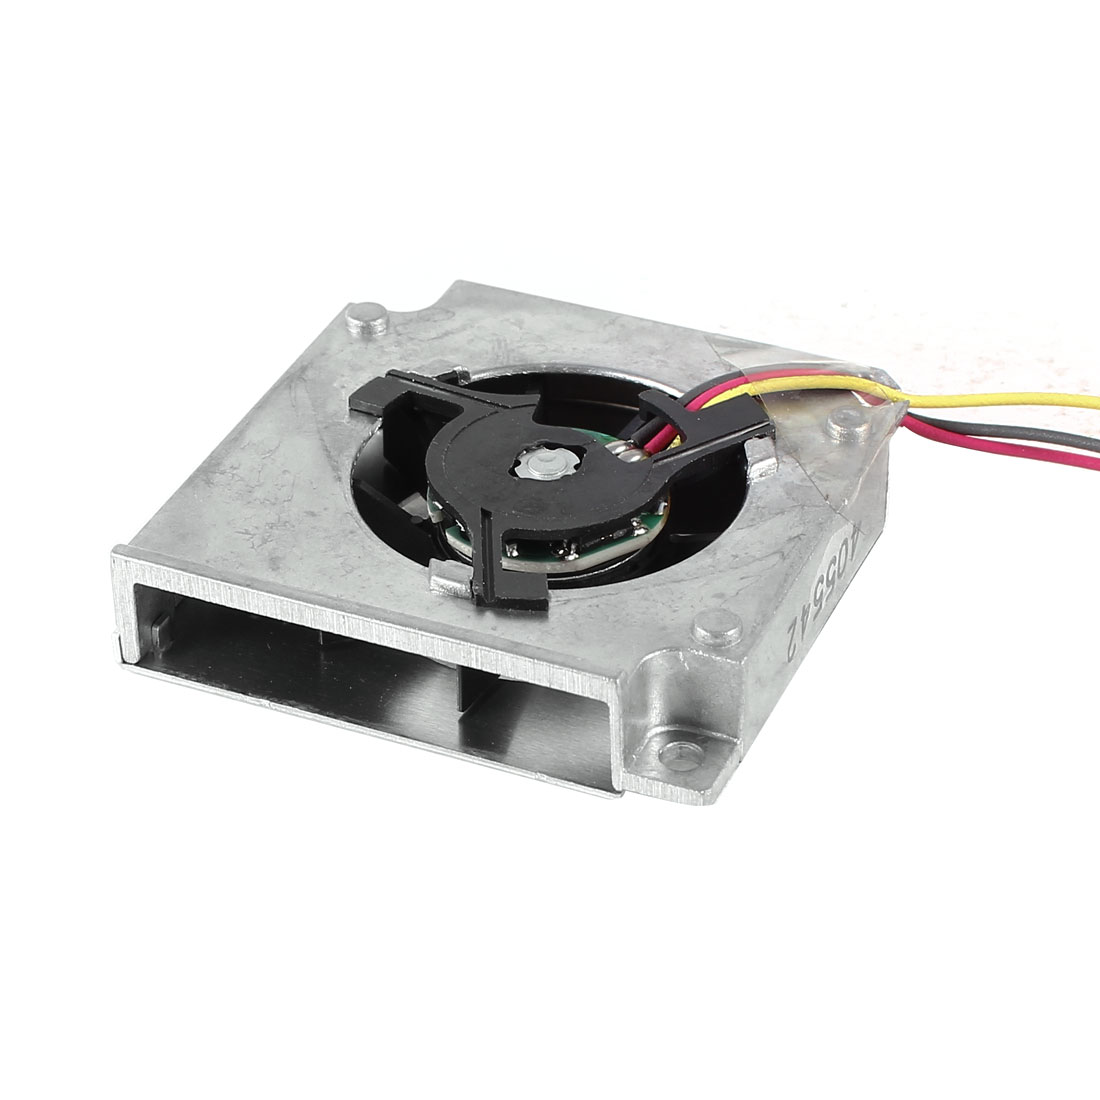 Black Silver Tone Aluminum Brushless VGA Heatsink Cooler Cooling Fan DC 5V